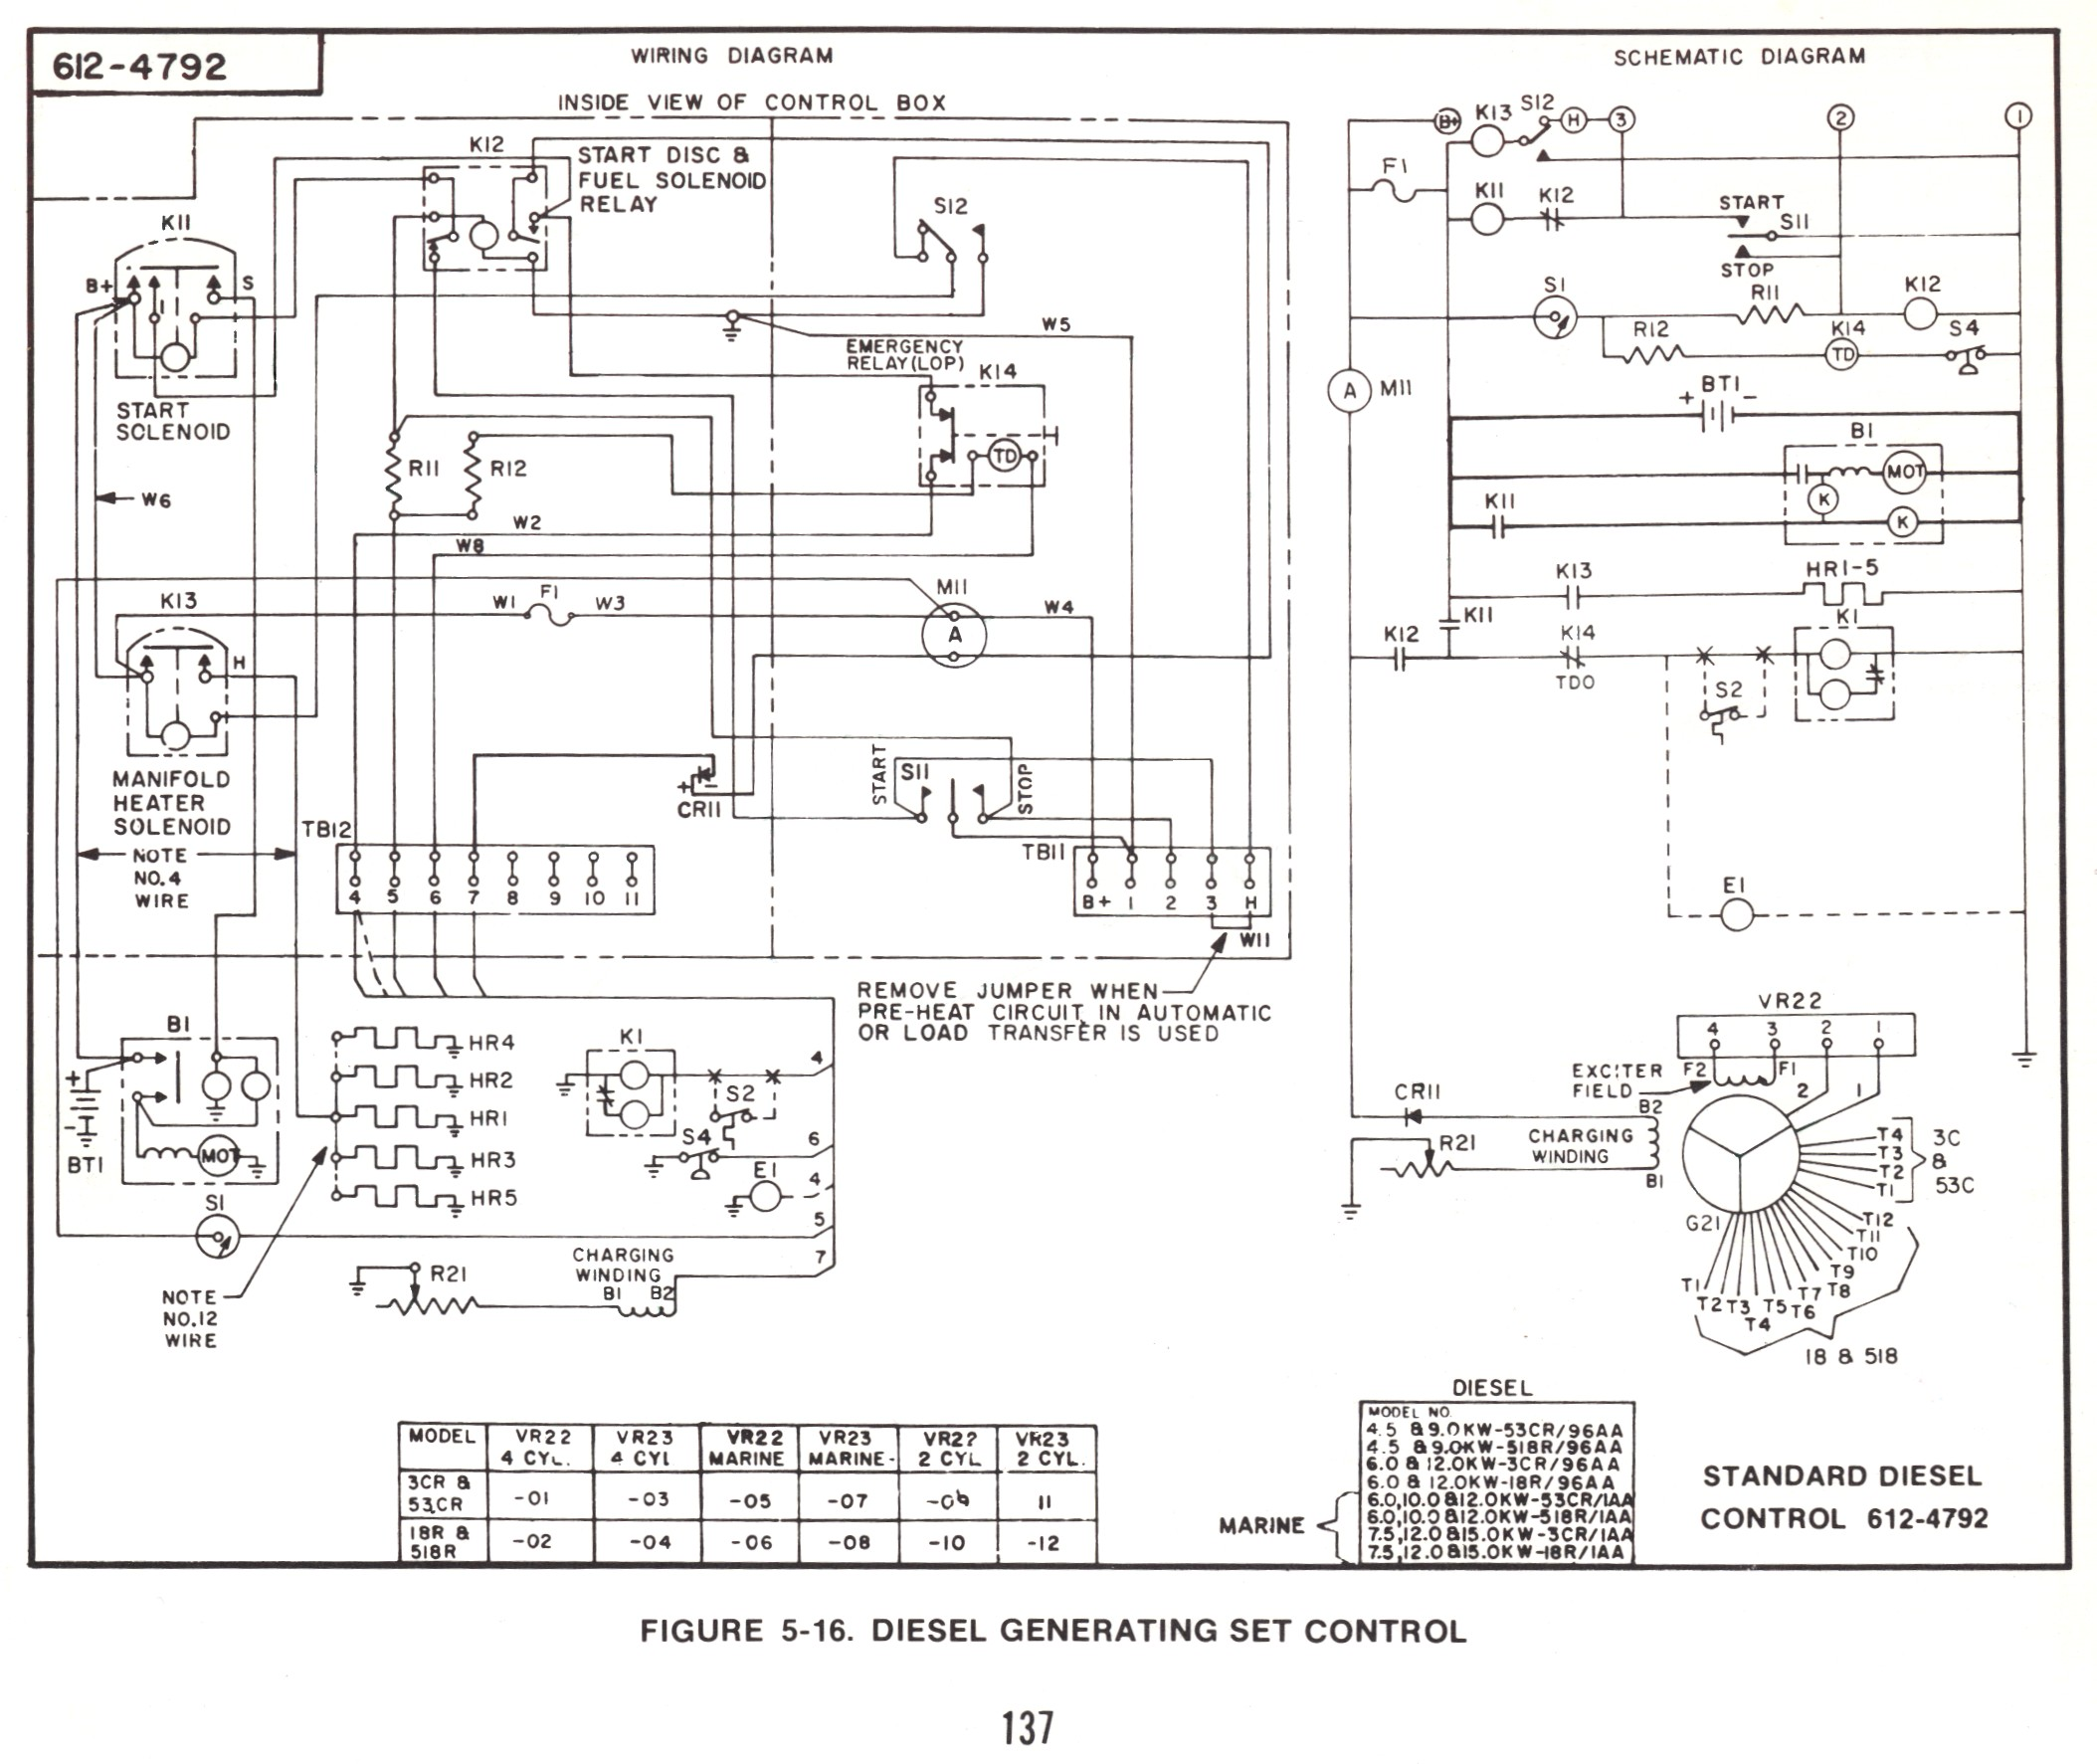 Onan Engine Parts Diagram An Stuff In Rv Generator Wiring Diagram for Wiring Diagram Of Onan Engine Parts Diagram